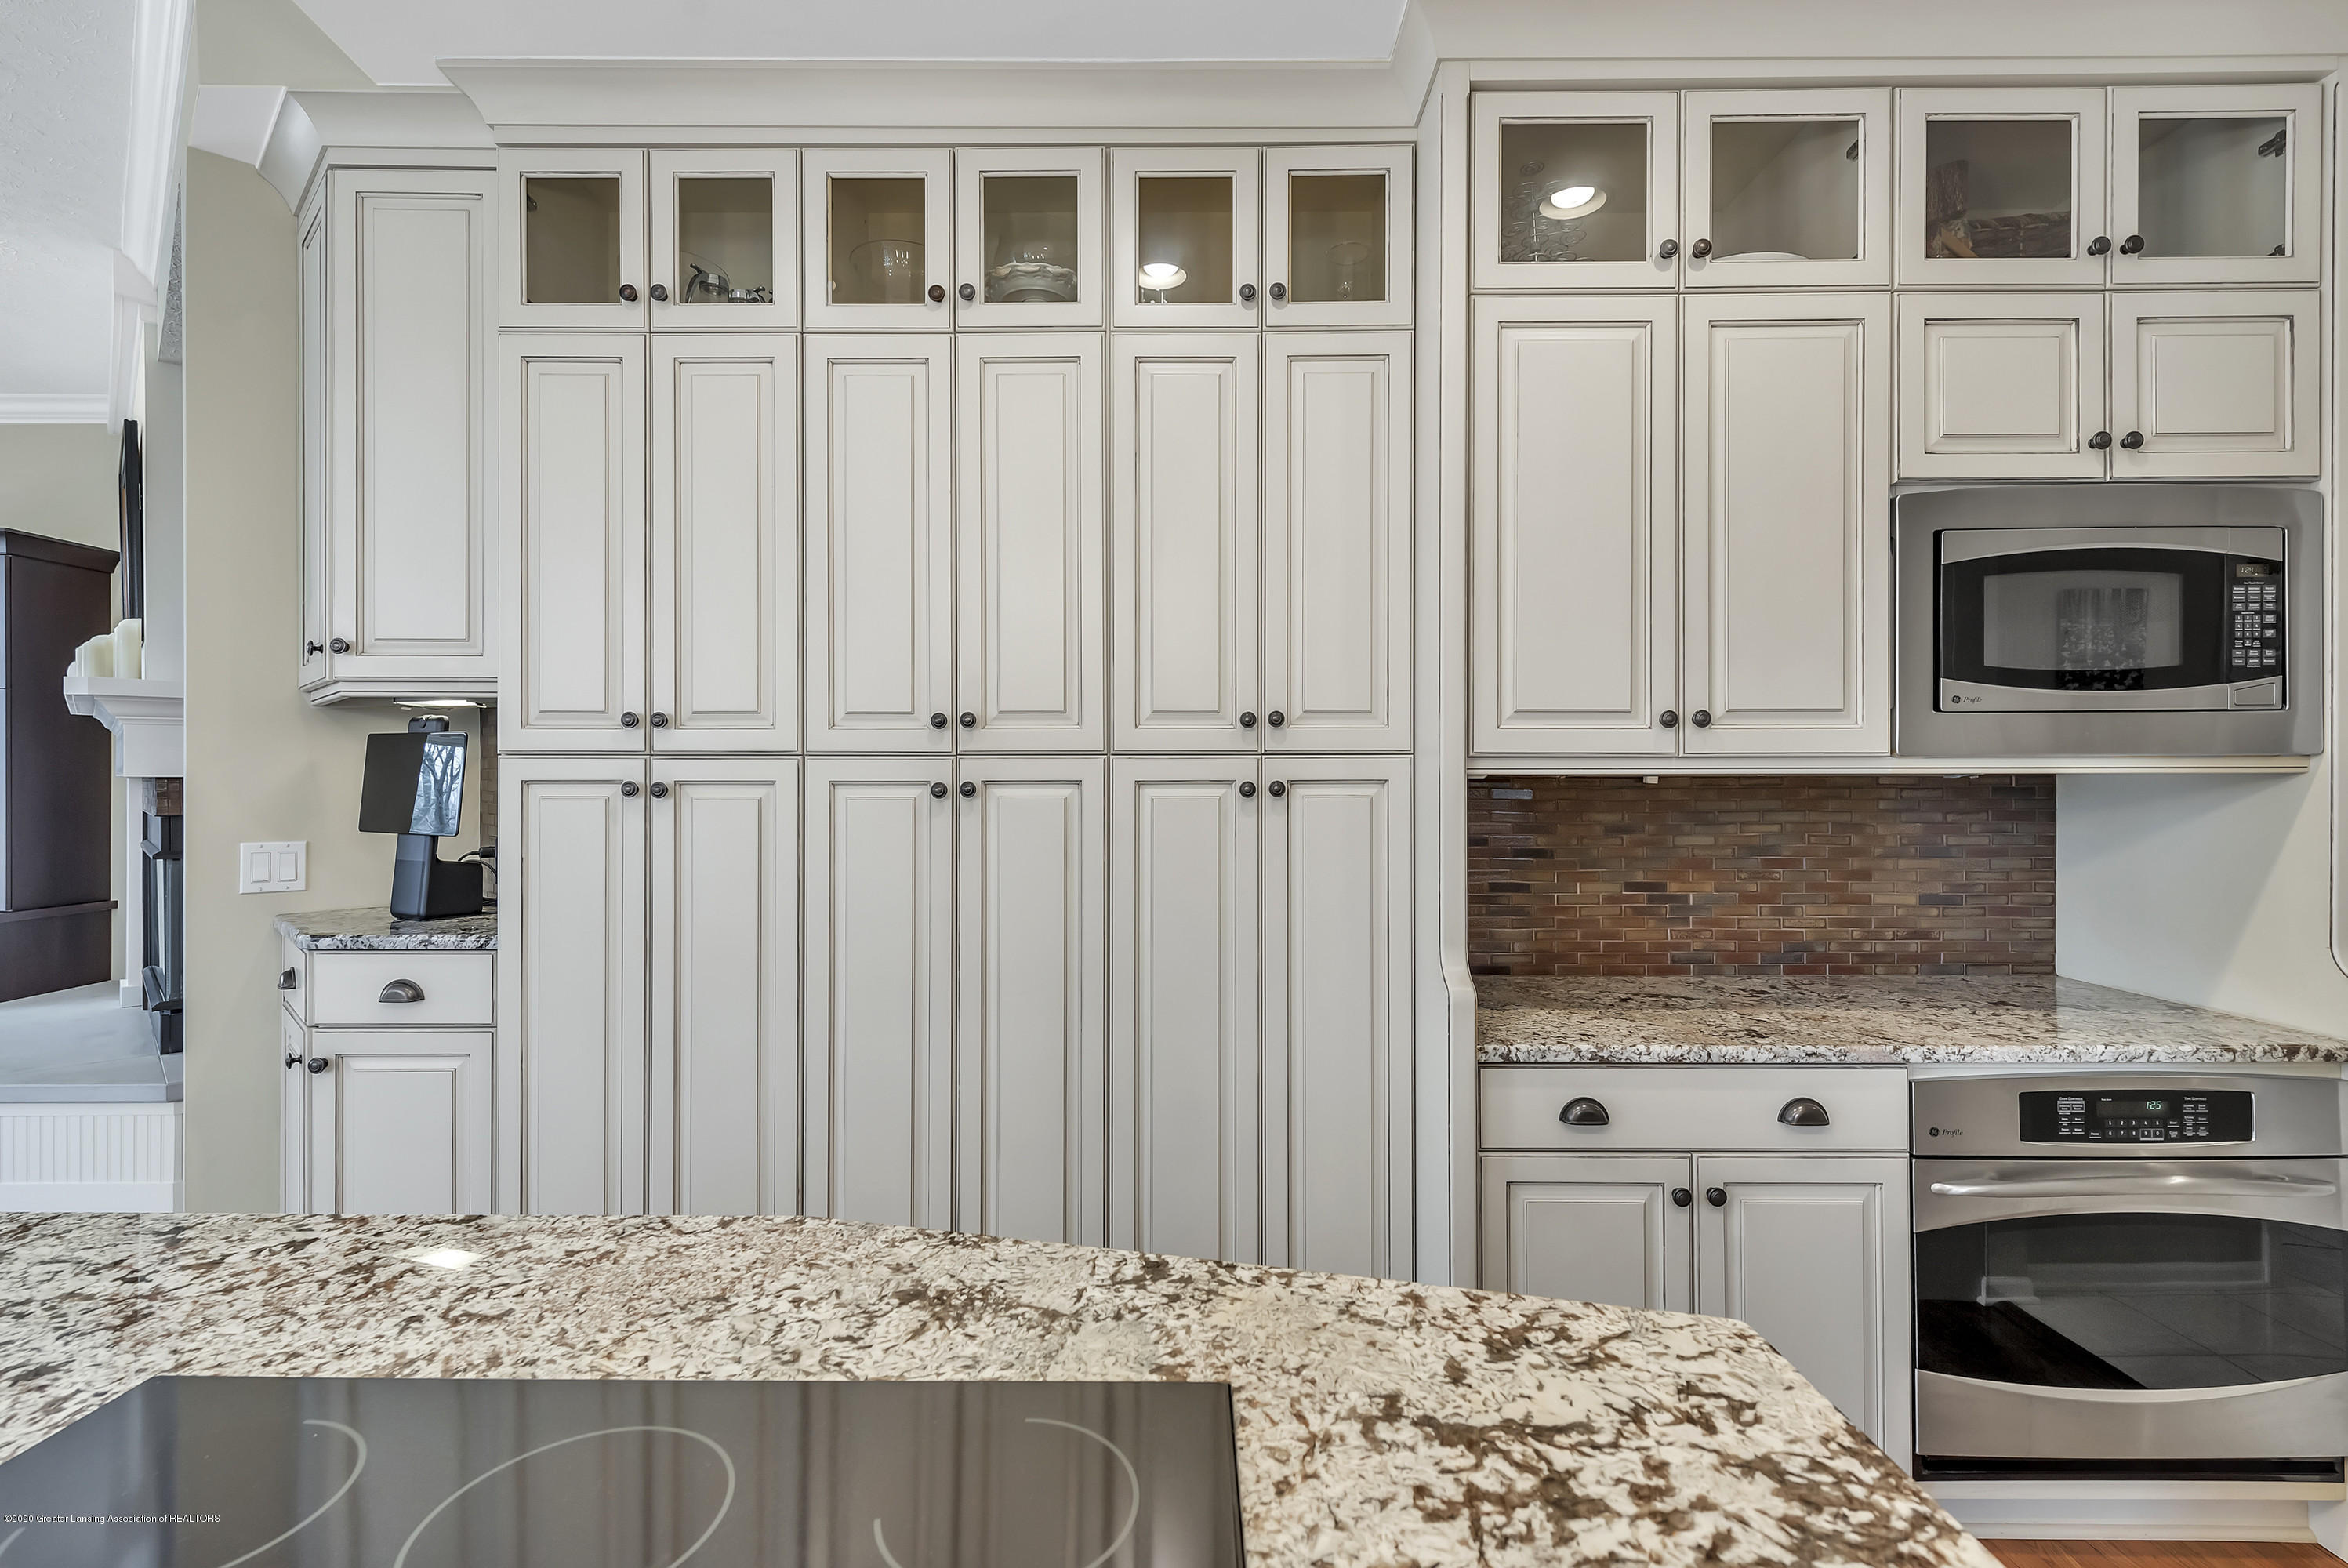 402 Shoreline Dr - Kitchen - 19